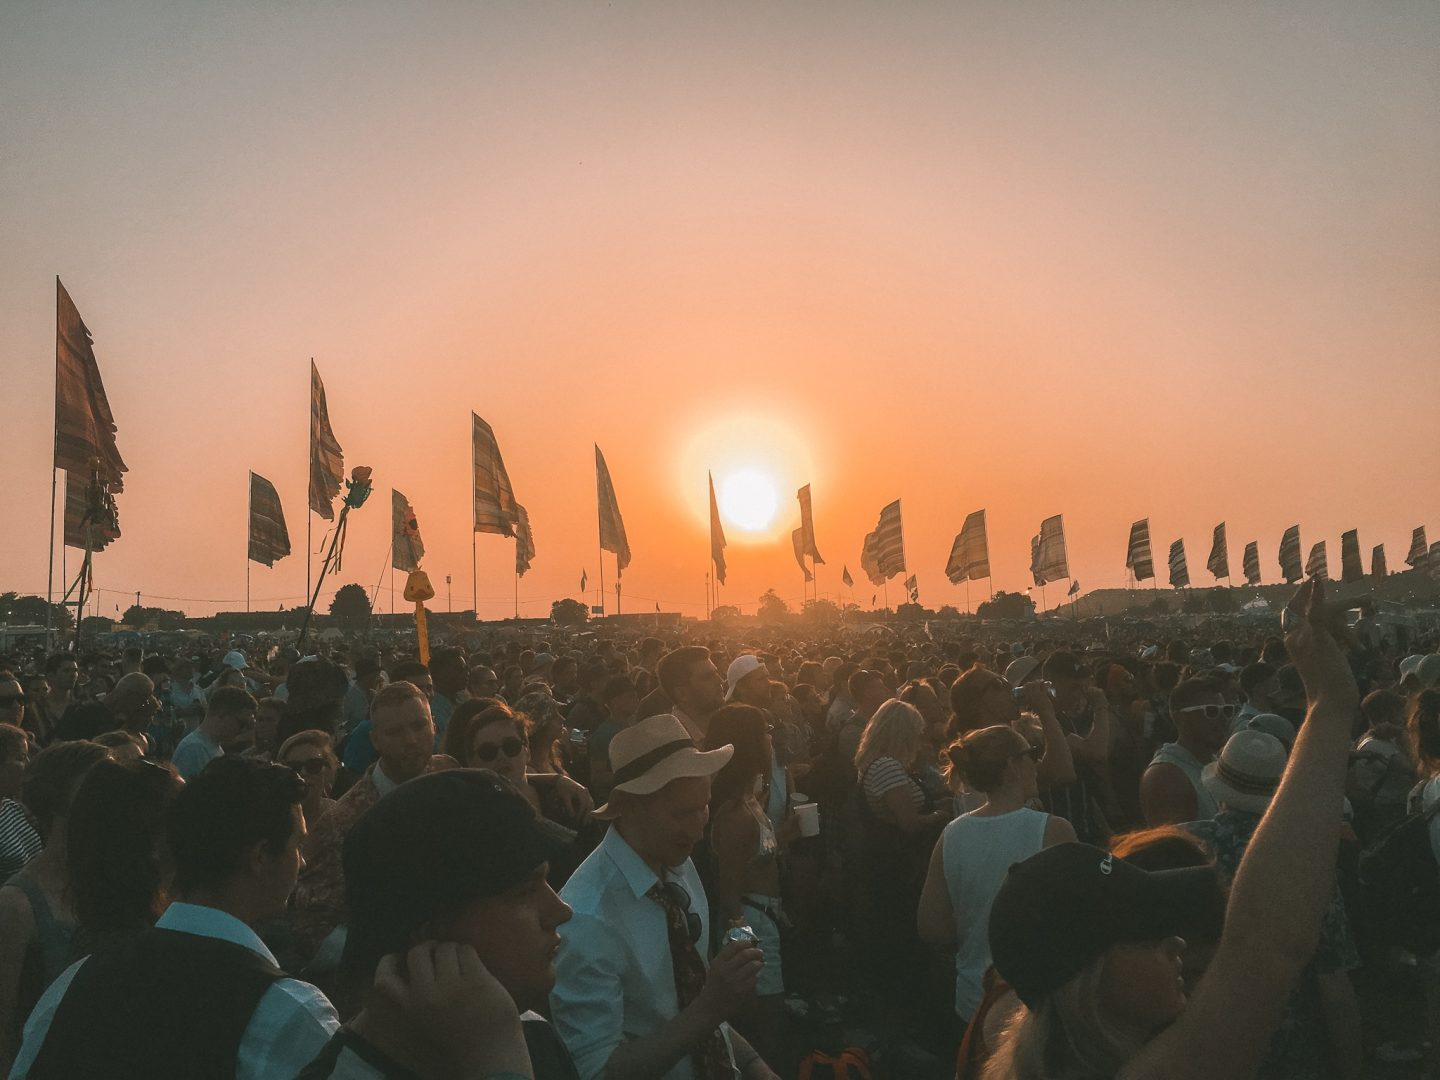 Sunset at Glastonbury festival